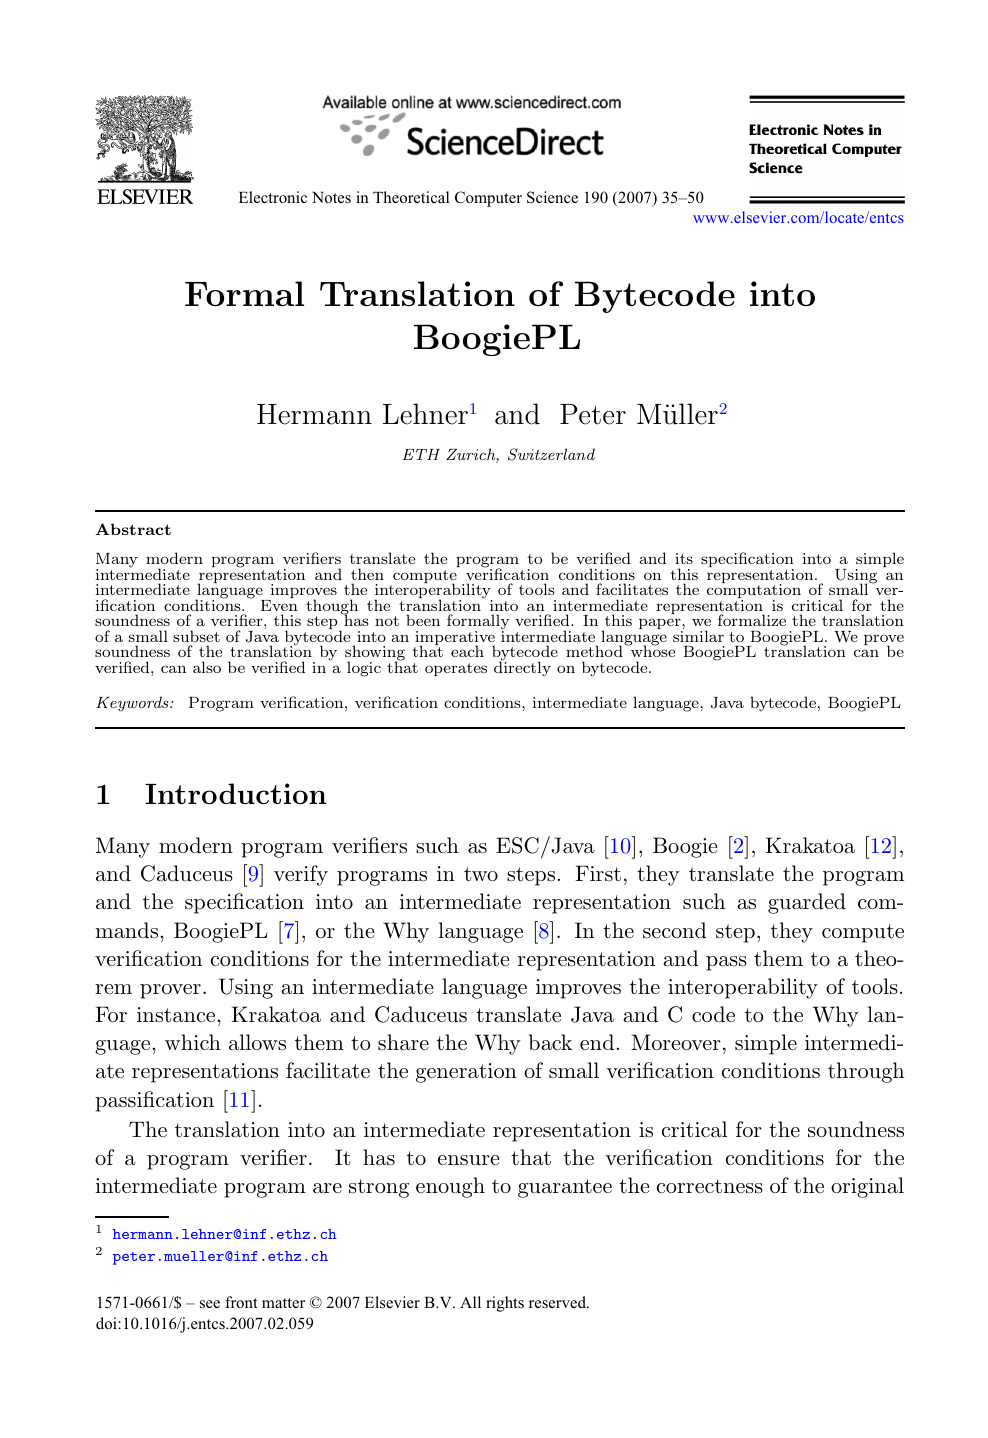 Formal Translation of Bytecode into BoogiePL – topic of